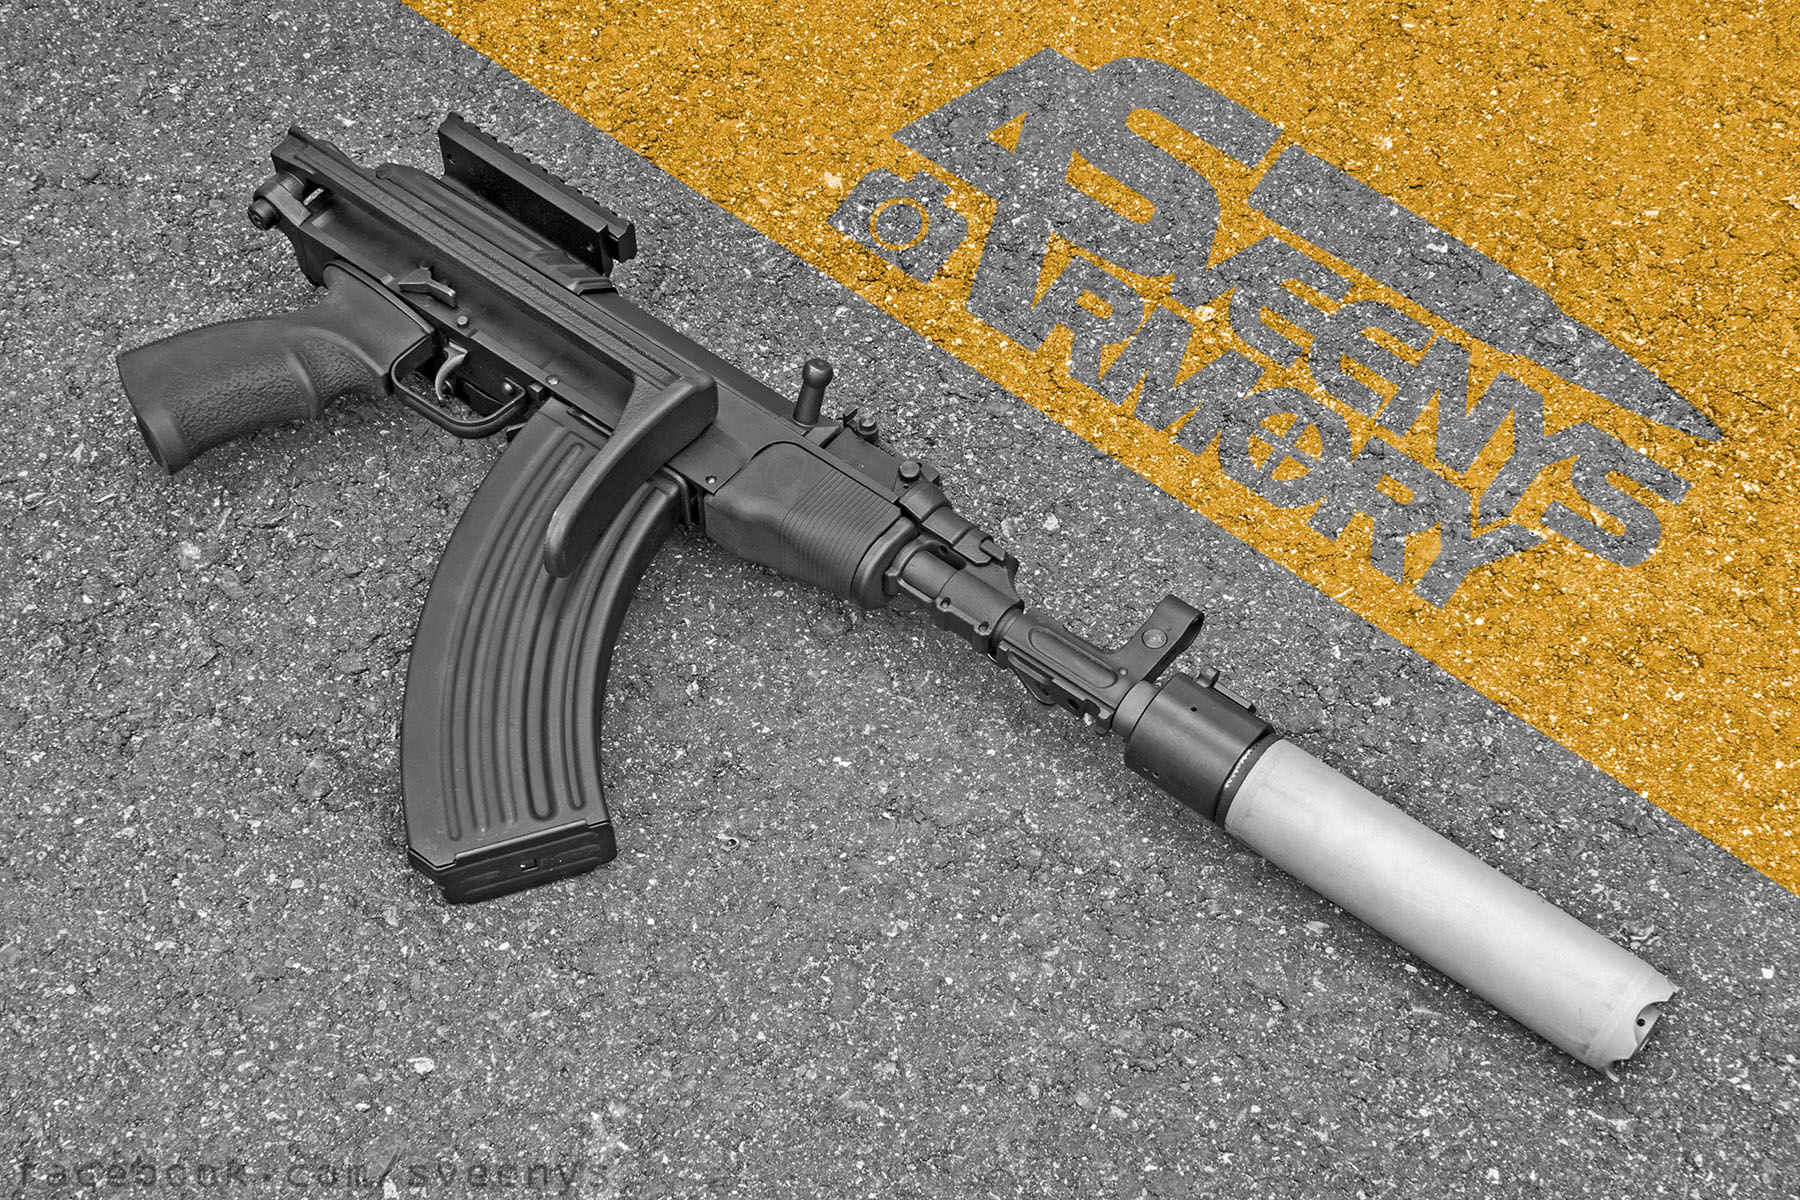 VZ 58 wallpapers, Weapons, HQ VZ 58 pictures | 4K Wallpapers